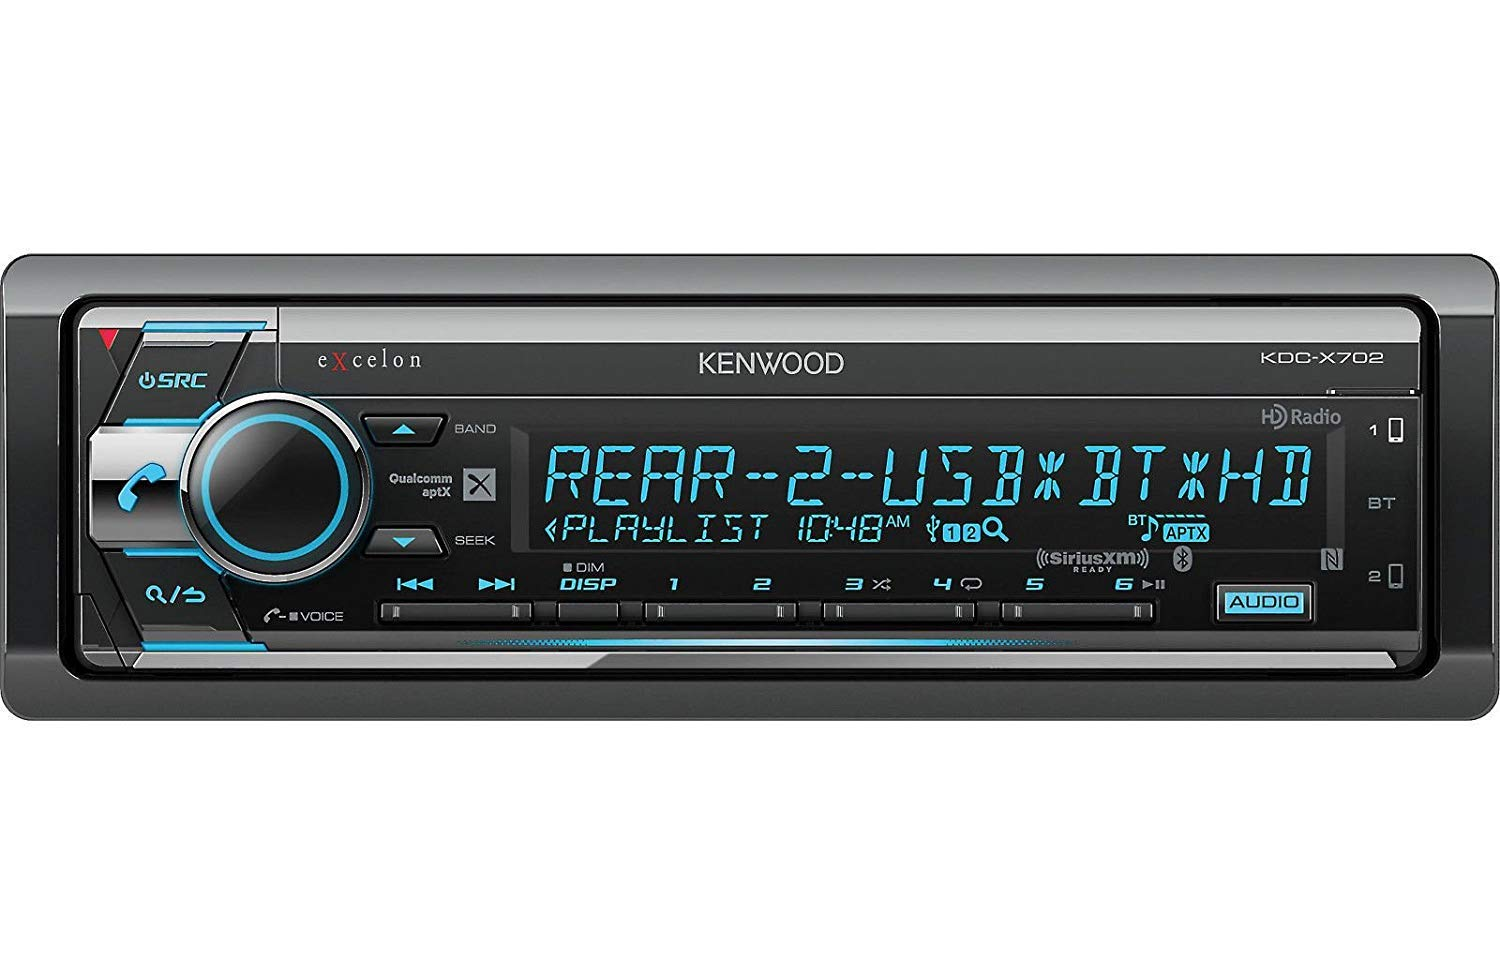 Kenwood Kdc X702 Cd Receiver W Bluetooth Hd Radio Car Parameters And Subwoofers Page 3 Audio Diymobileaudio Electronics